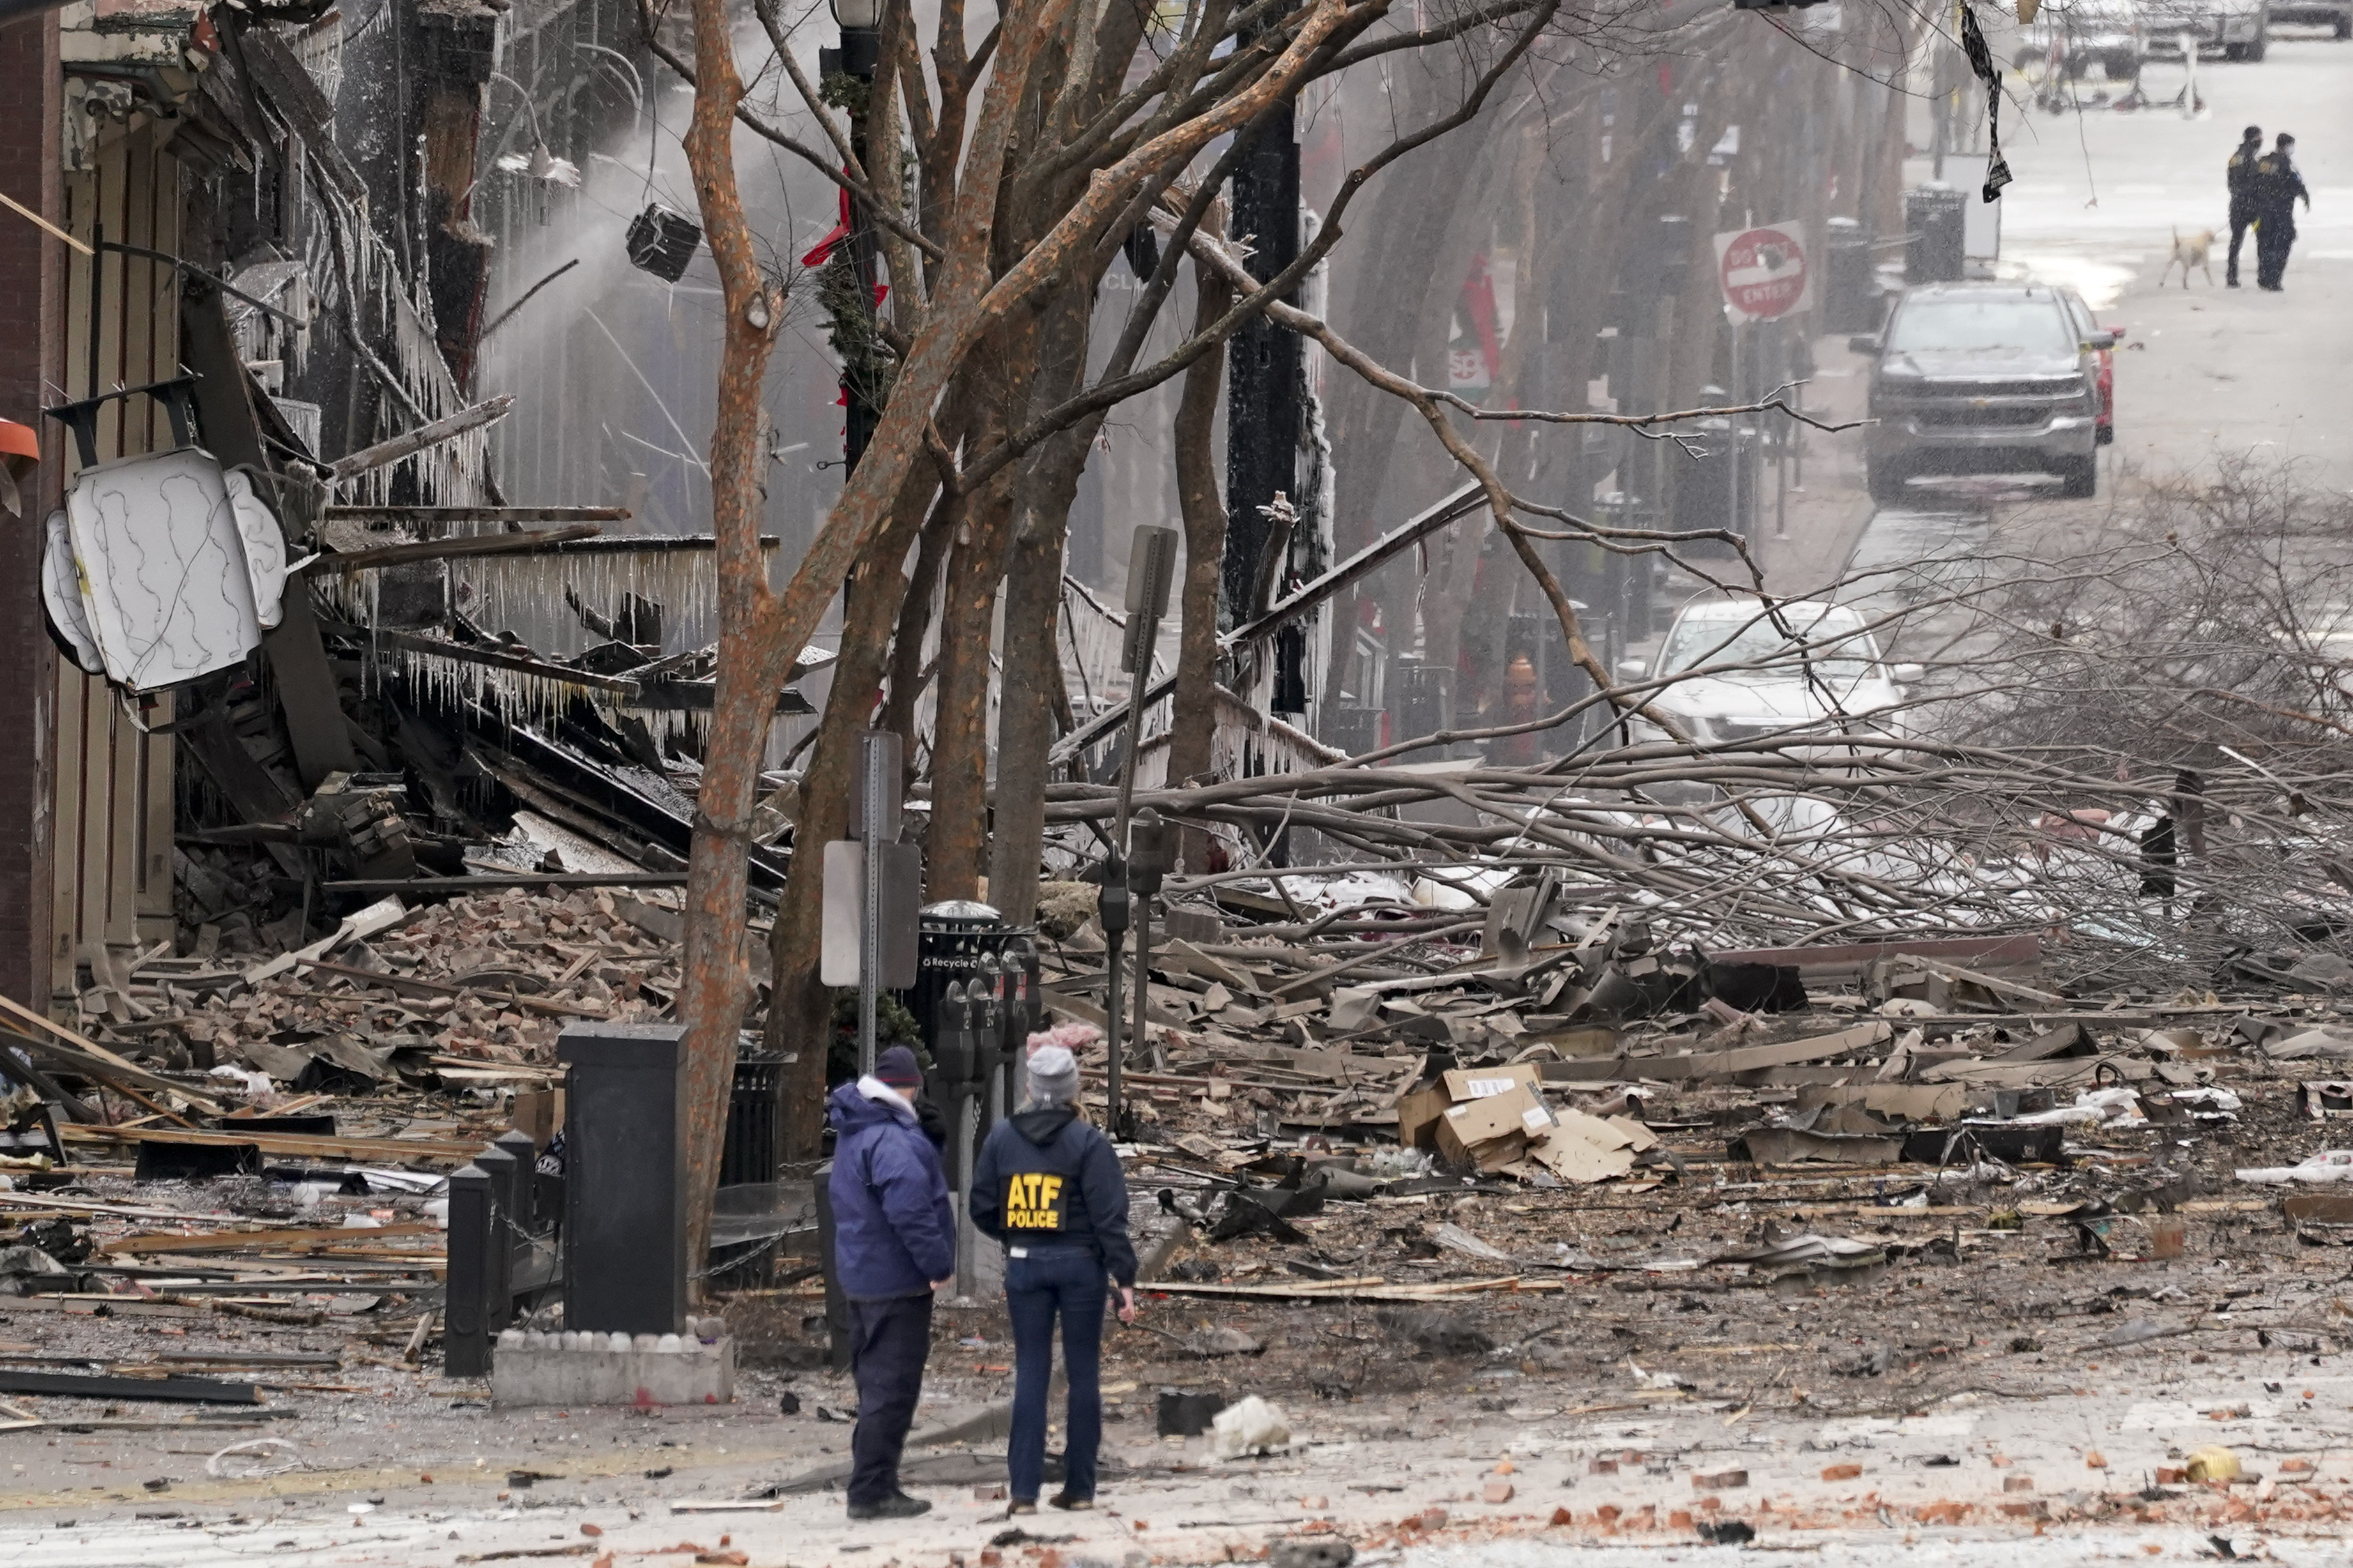 Emergency personnel work near the scene of an explosion in downtown Nashville, Tenn., Friday, Dec. 25, 2020. Buildings shook in the immediate area and beyond after a loud boom was heard early Christmas morning.